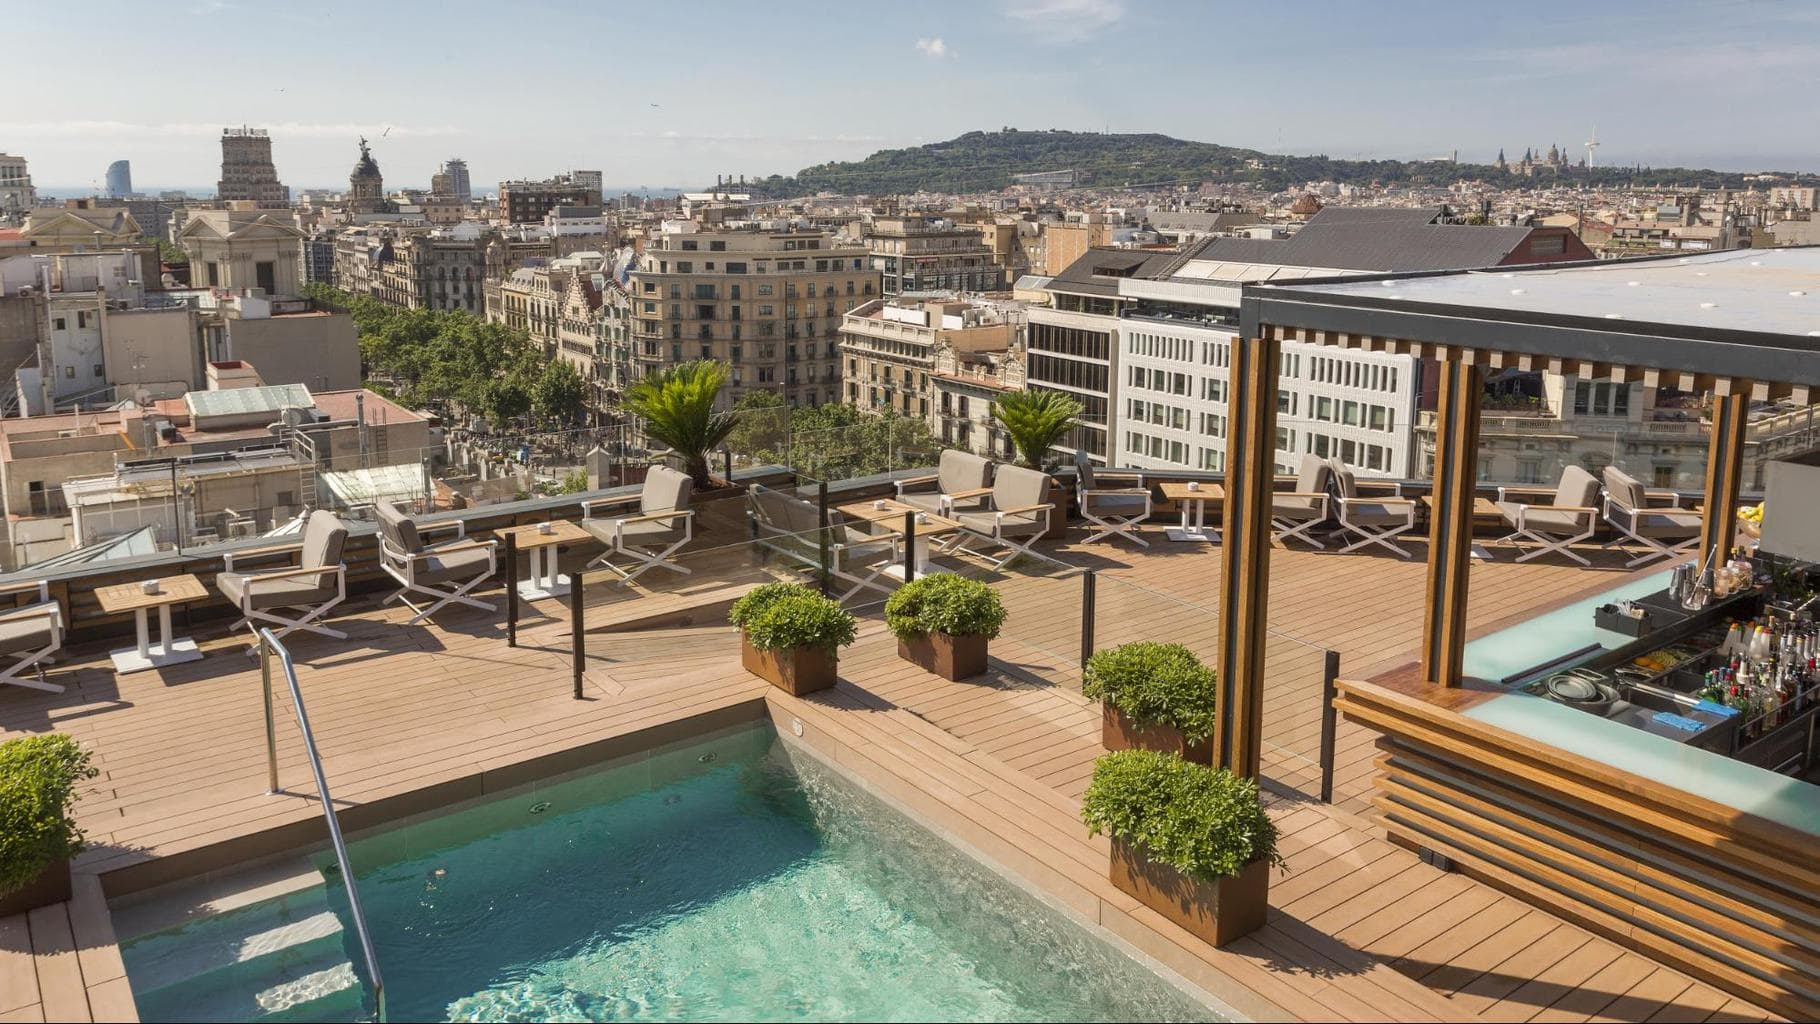 La Dolce Vitae rooftop pool, bar and restaurant at Majestic Hotel & Spa Barcelona plunge pool